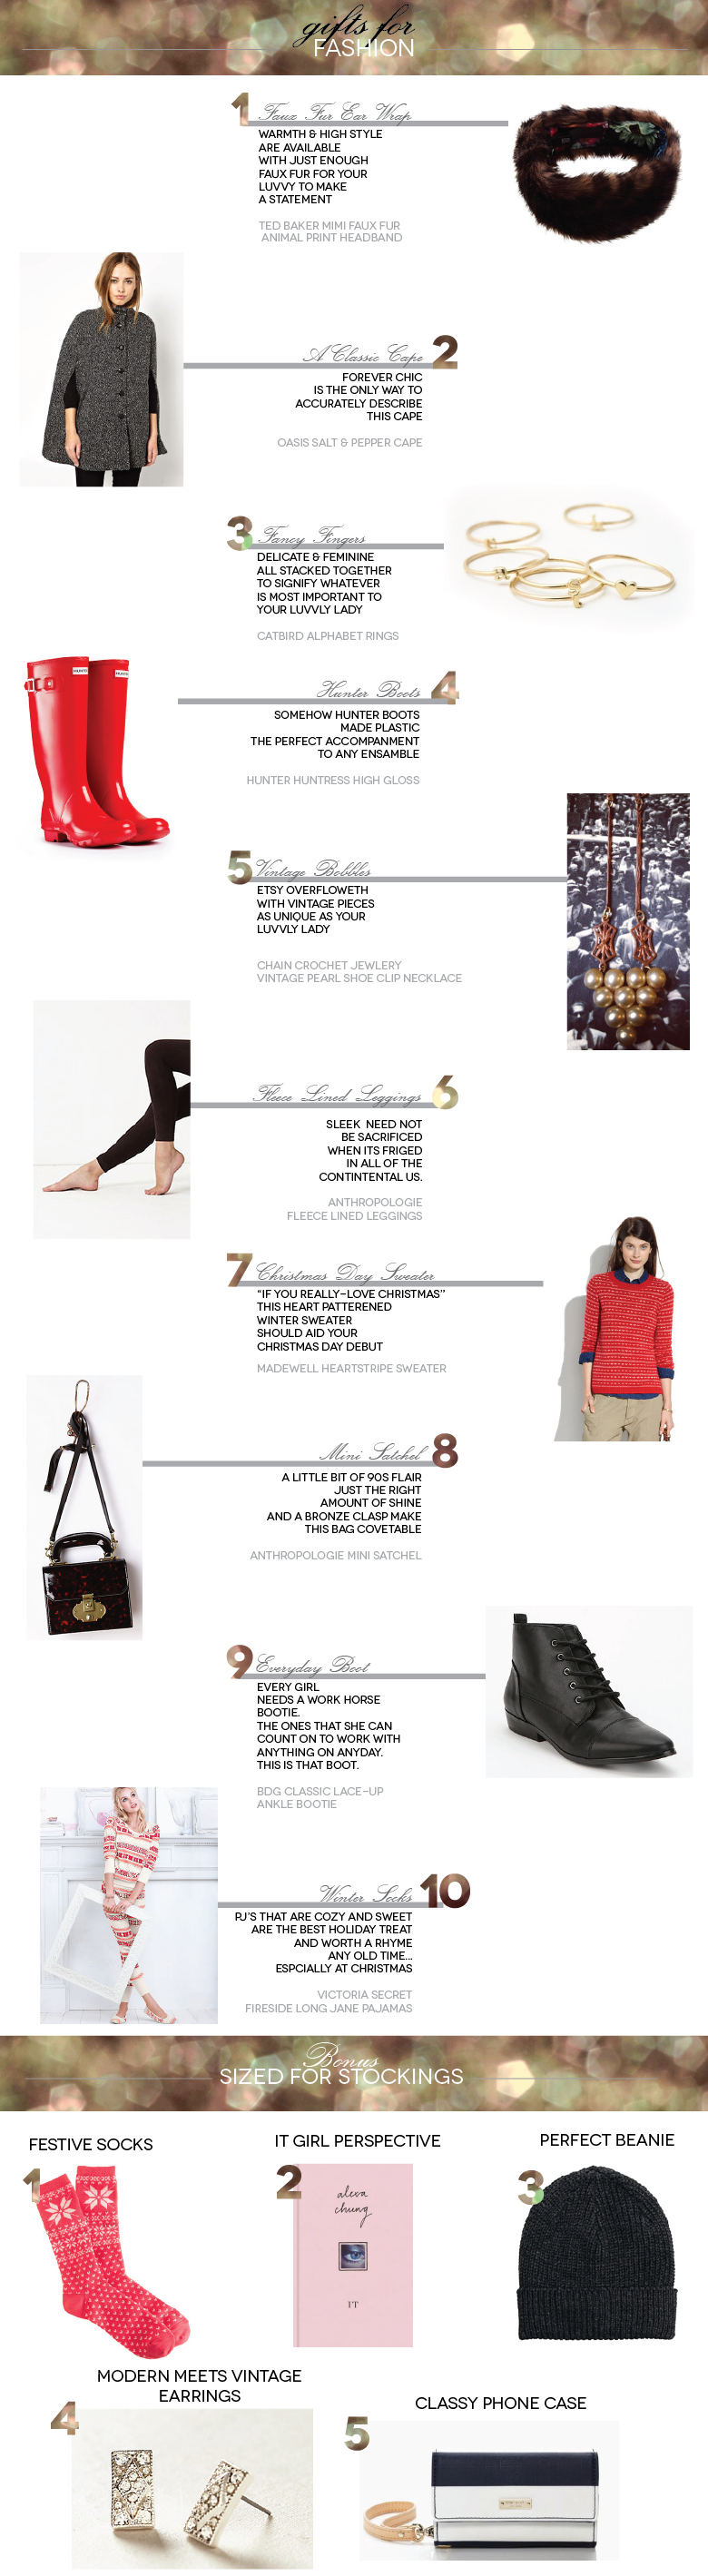 Gift Guide 2013_Fashion_Items-01